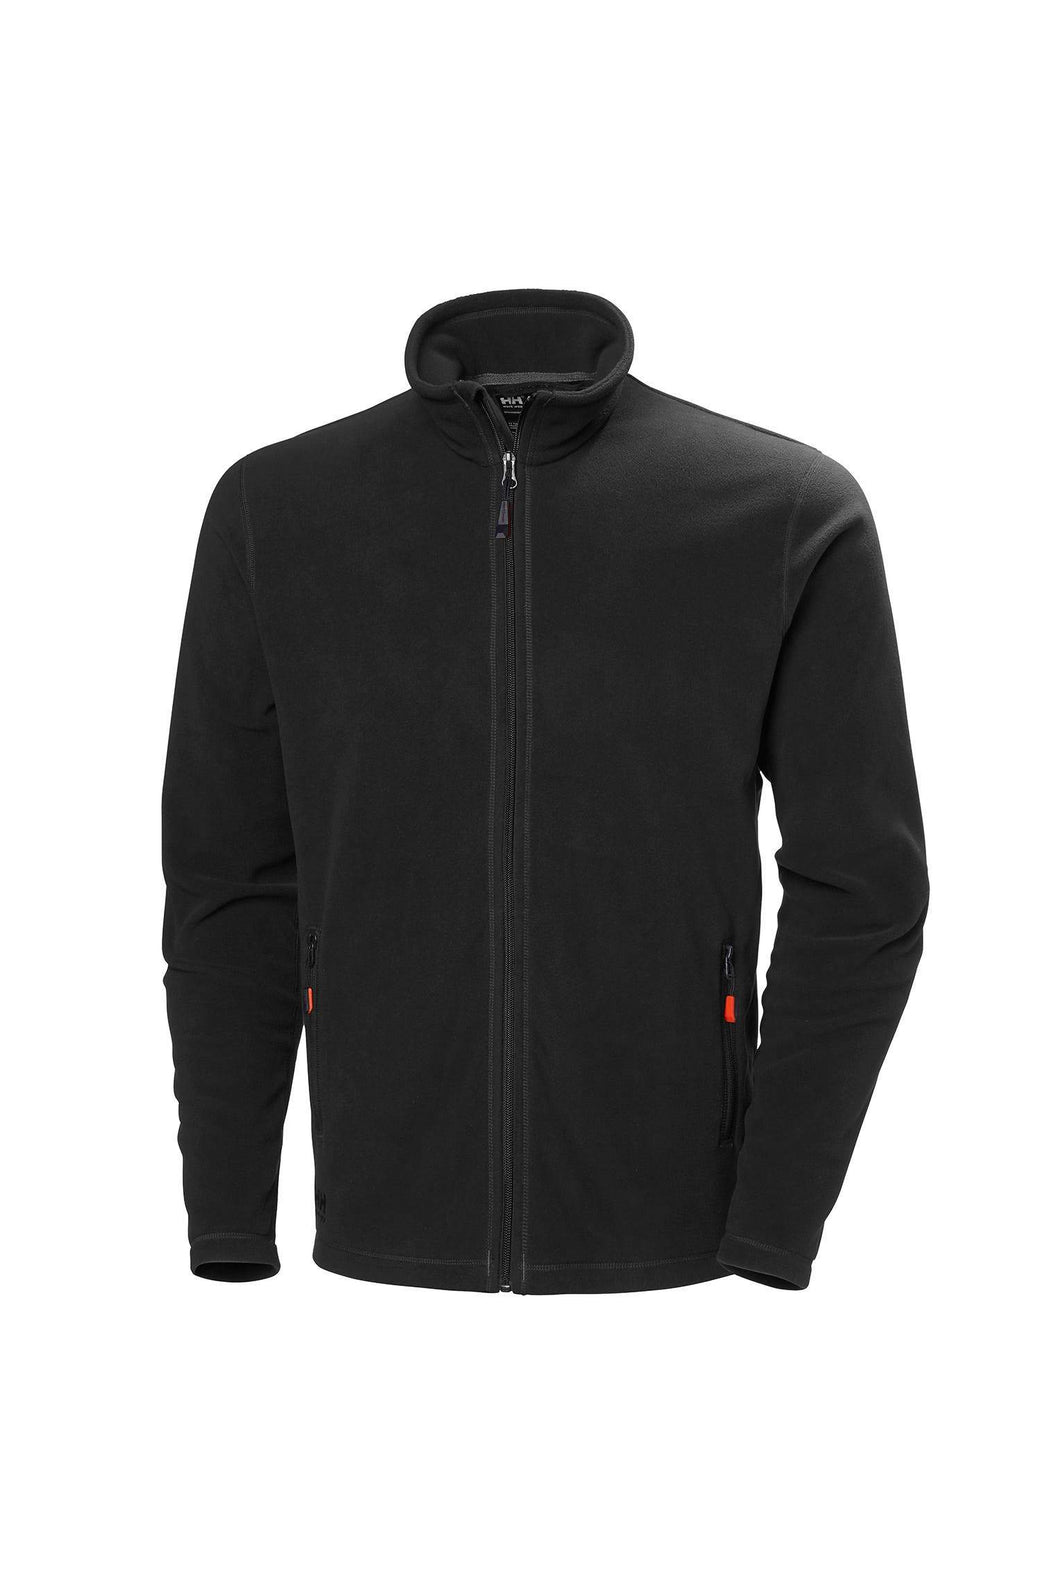 Helly Hansen Men's Oxford Light Fleece Jacket in Black from the front